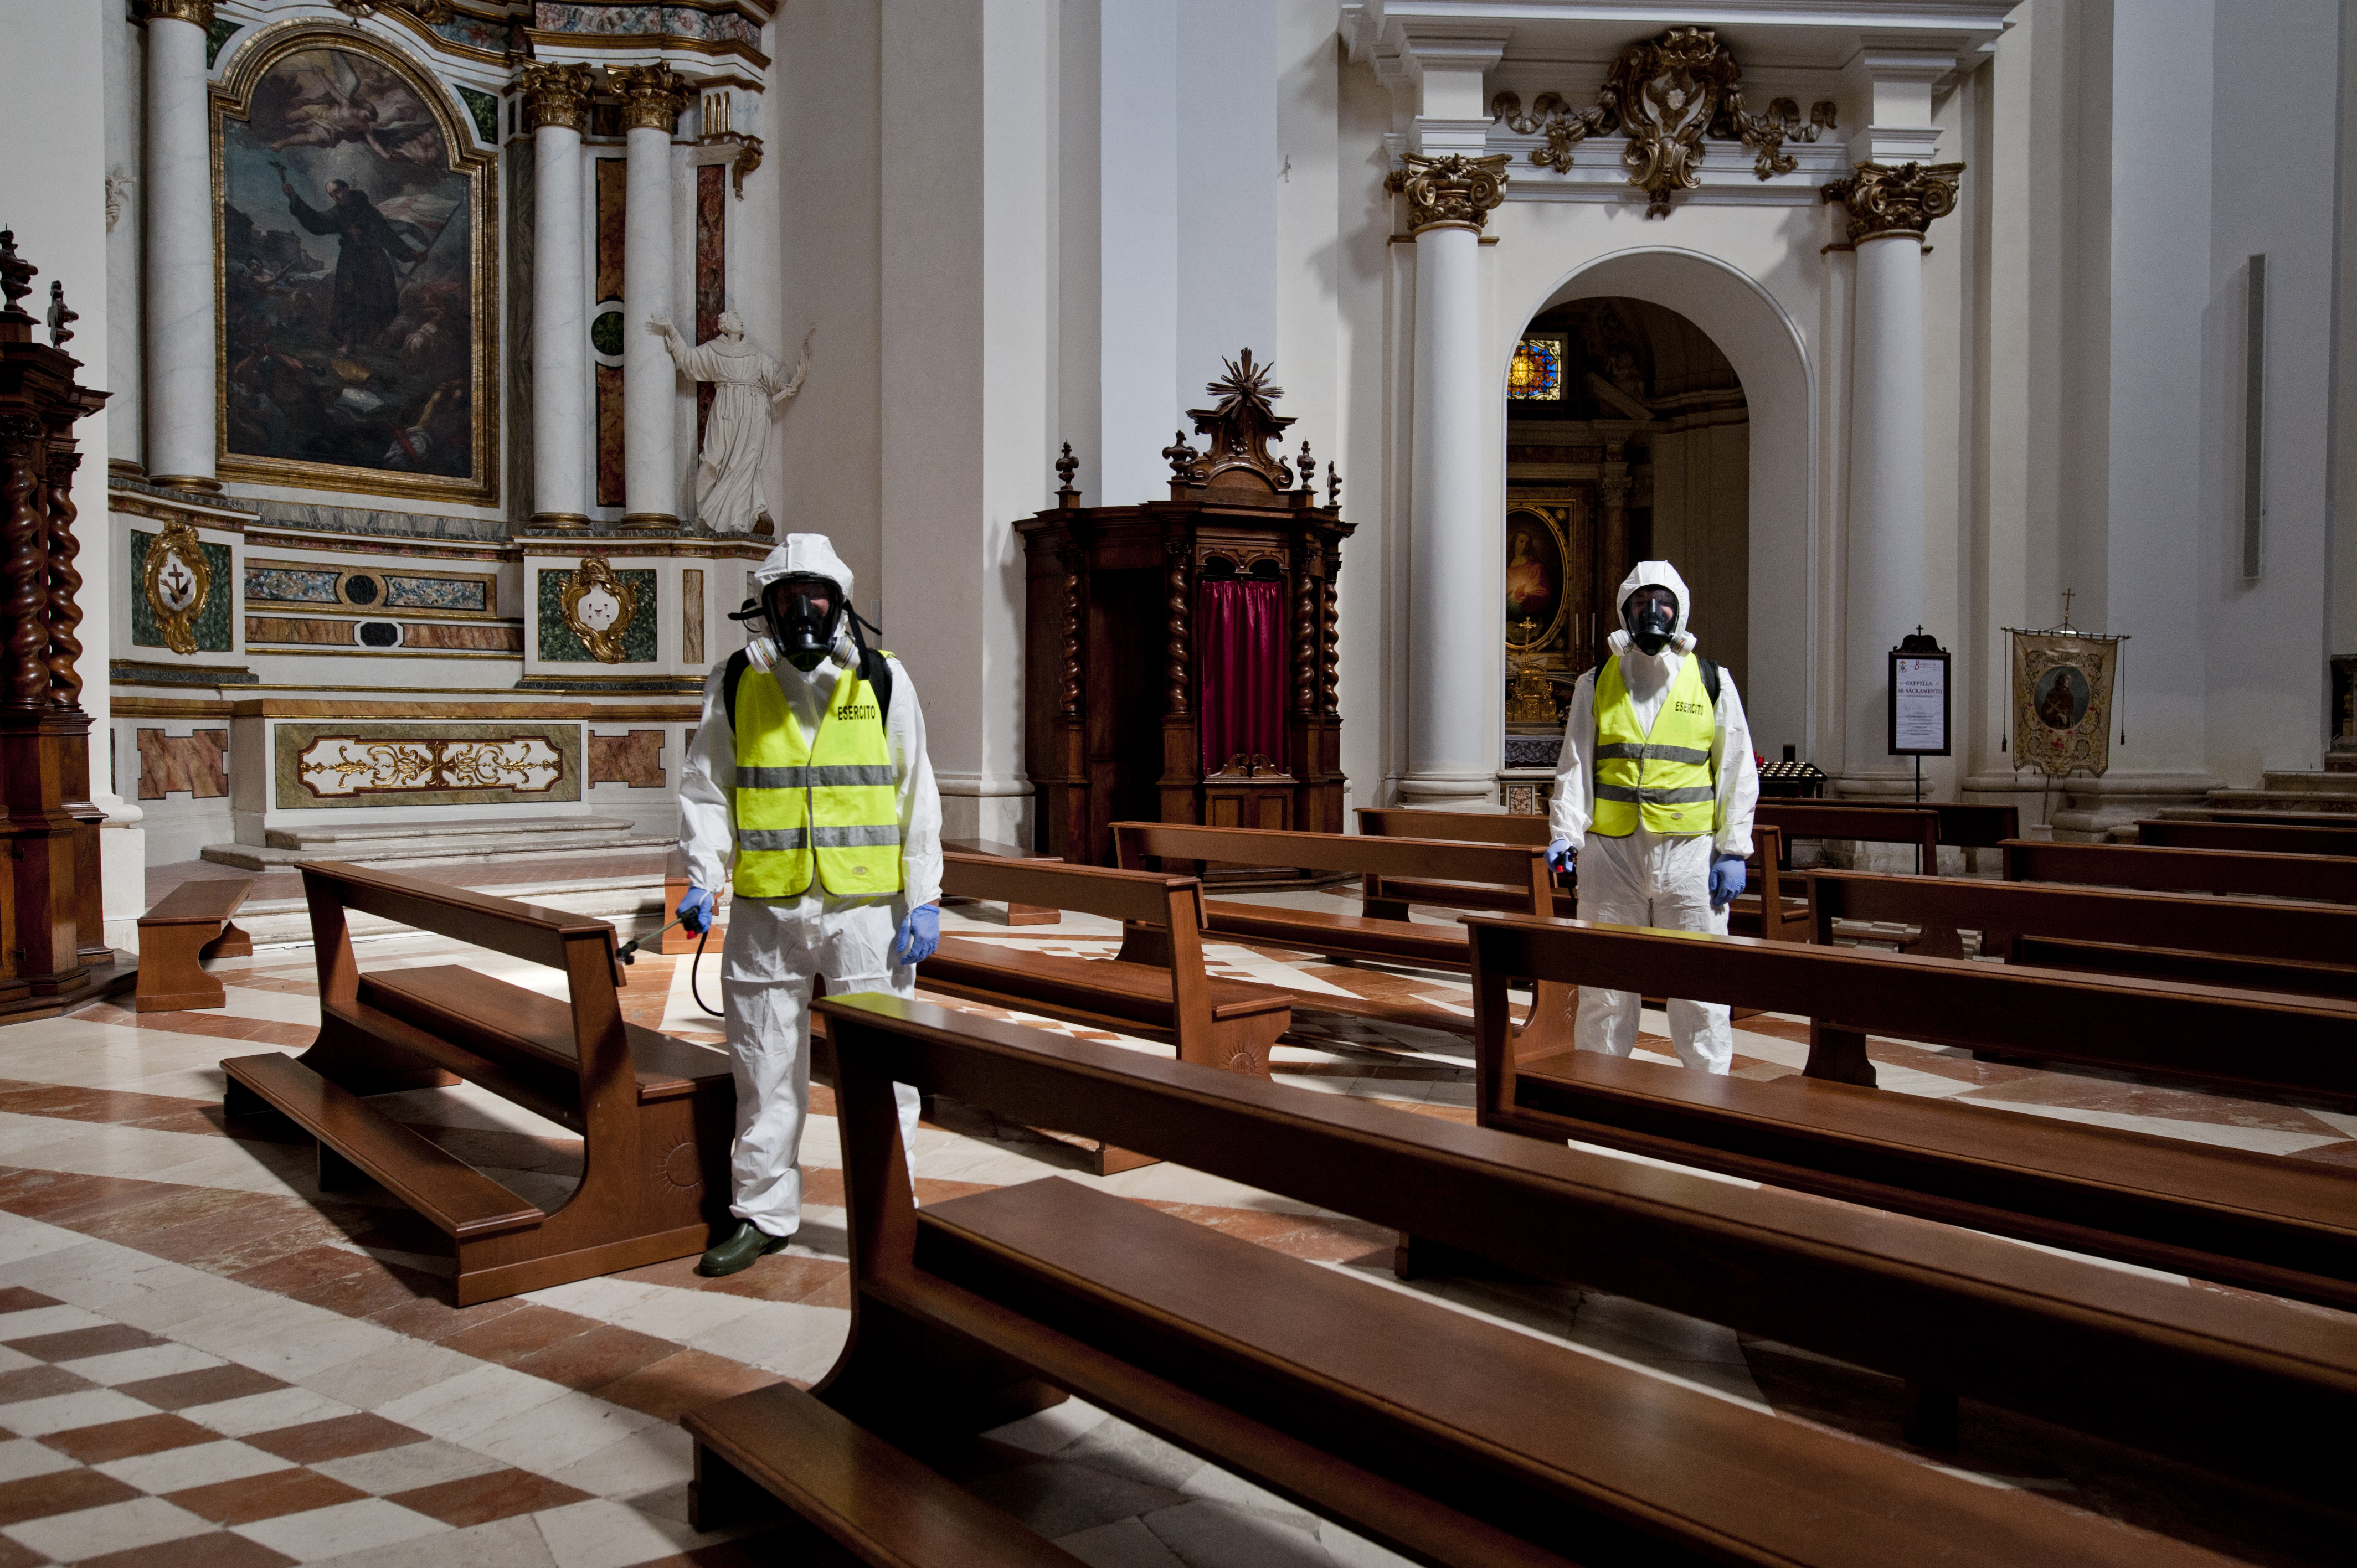 Potrait of Disinfectors of the 9th Alpine Regiment, in L'Aquila, Italy, on May 20, 2027, during sanitize in an Church.  Disinfectors of the 9th Alpine Regiment sanitize the Cathedral of St. Bernardino from Siena. The 9th Alpine Regiment intervenes in the sanitization of one of the symbol places of worship of the city of L'Aquila. (Photo by Andrea Mancini/NurPhoto via Getty Images)